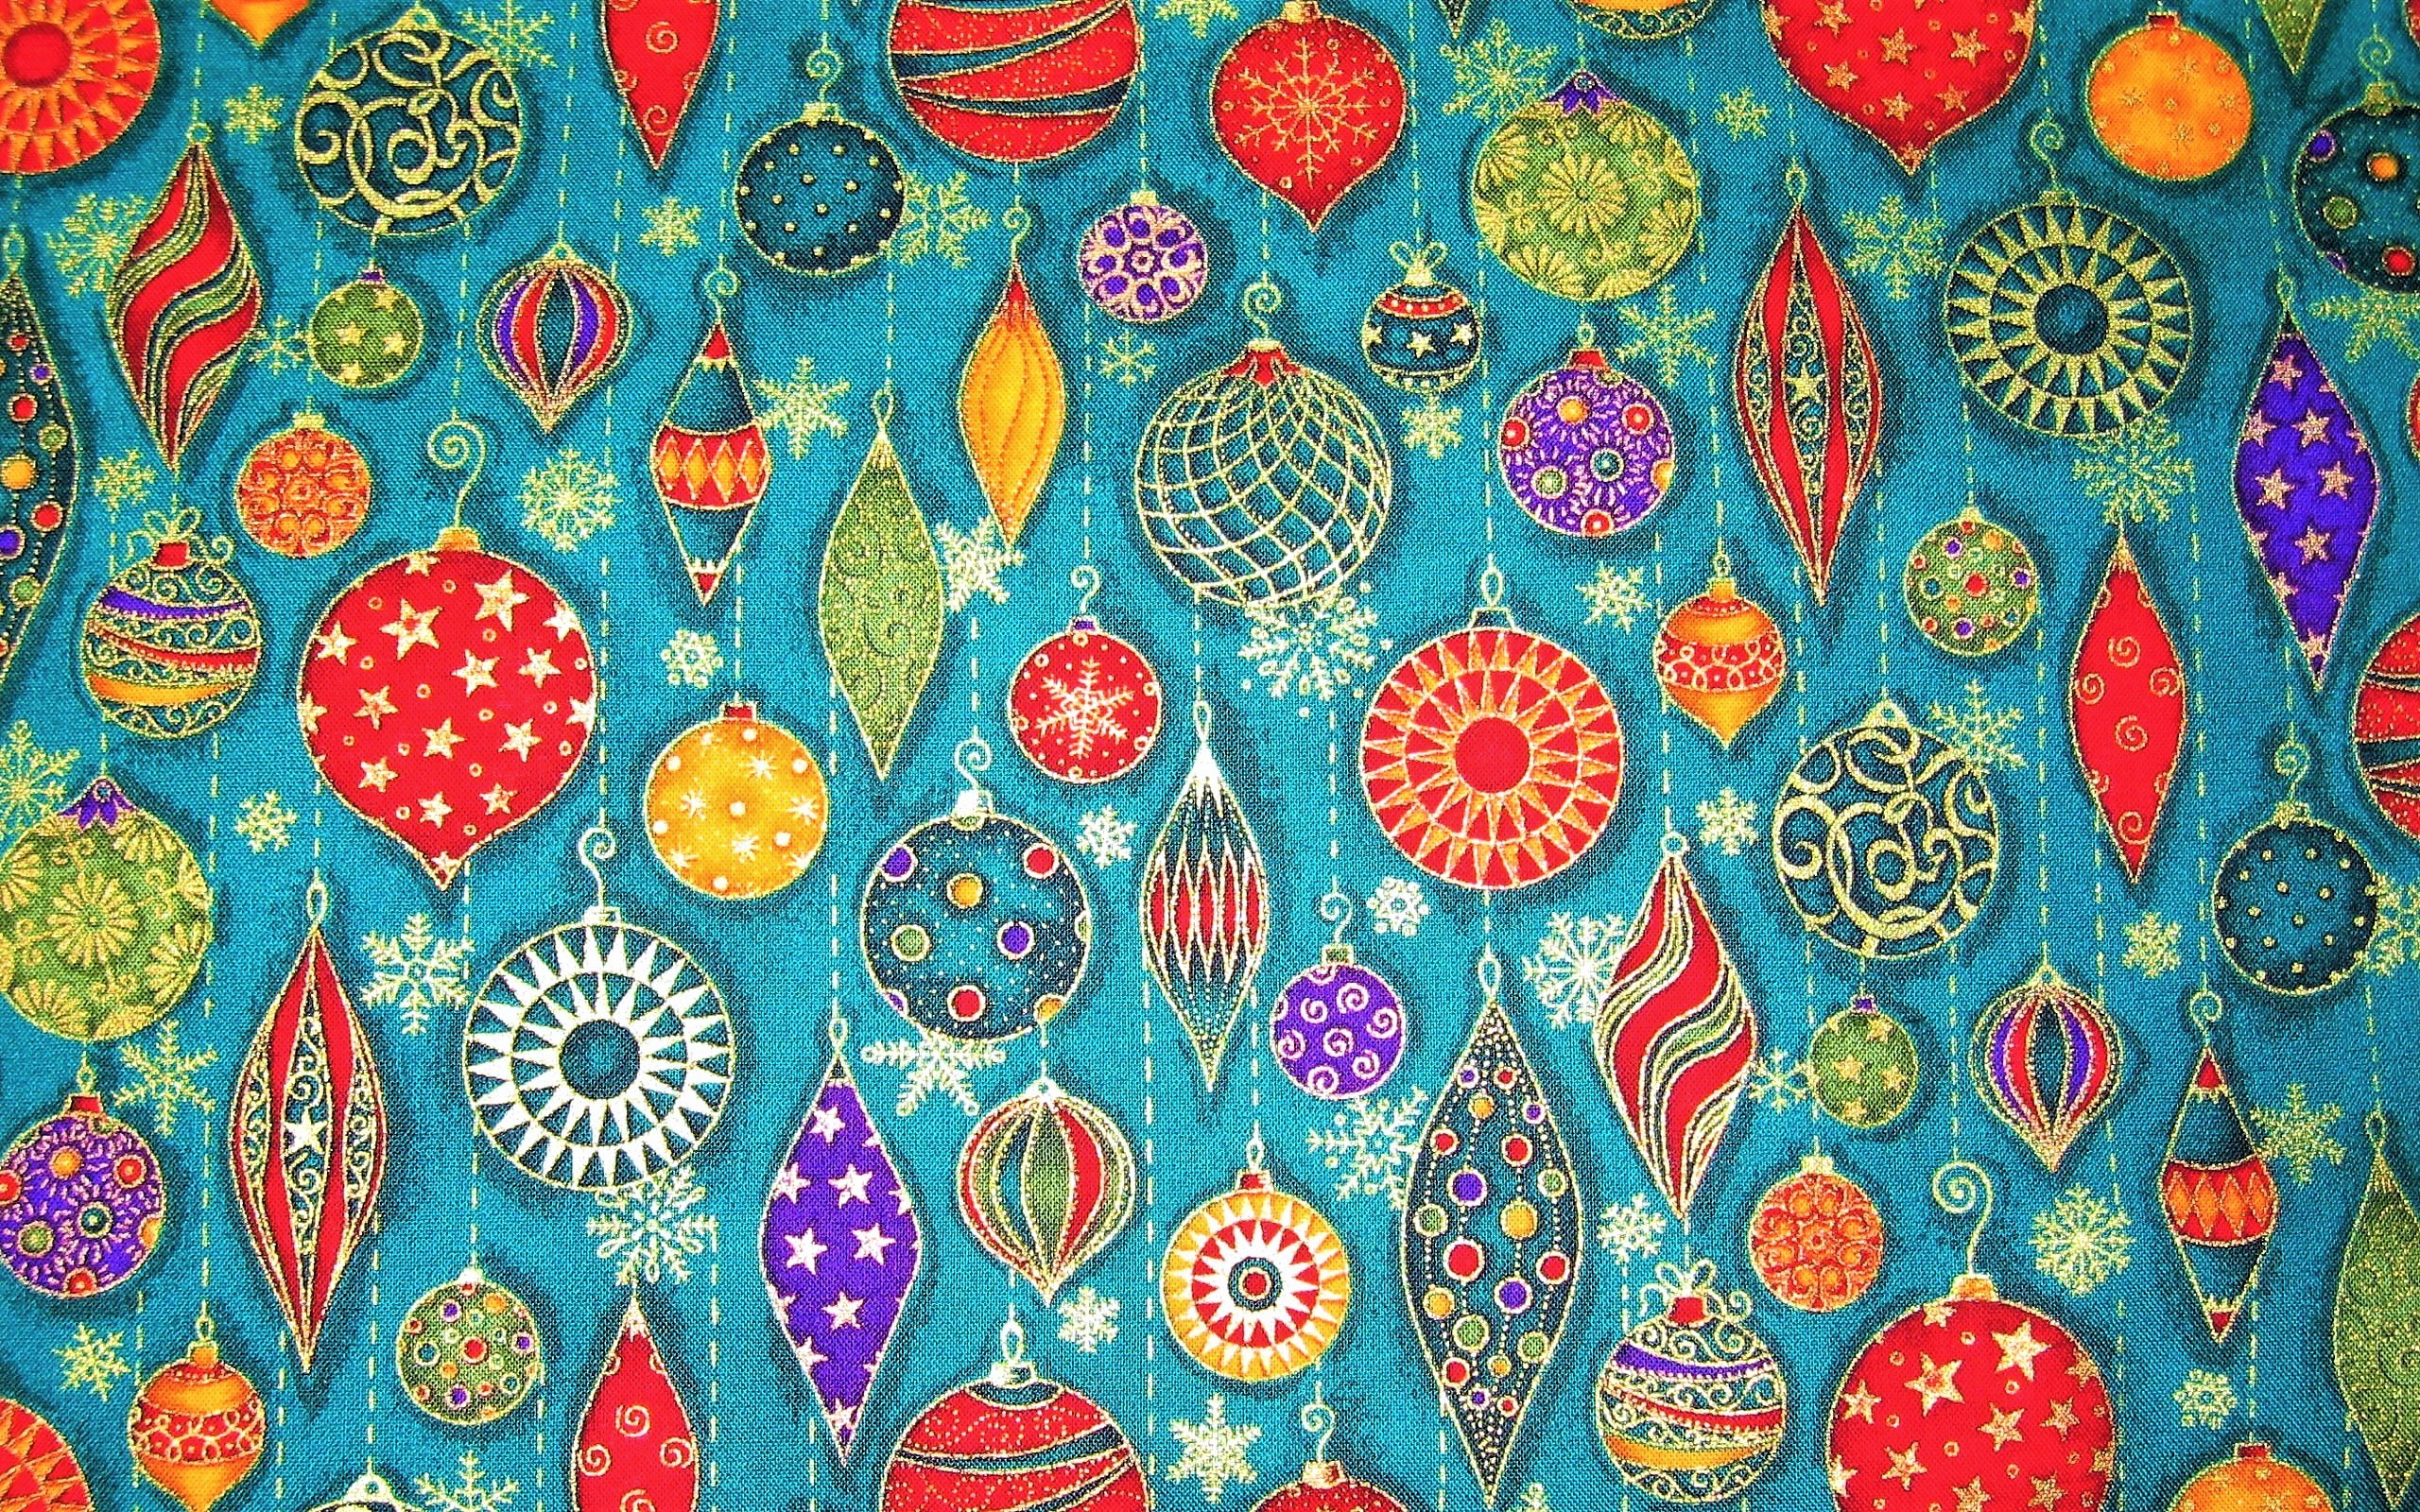 Colorful Christmas Ornaments Hd Wallpaper Background Image